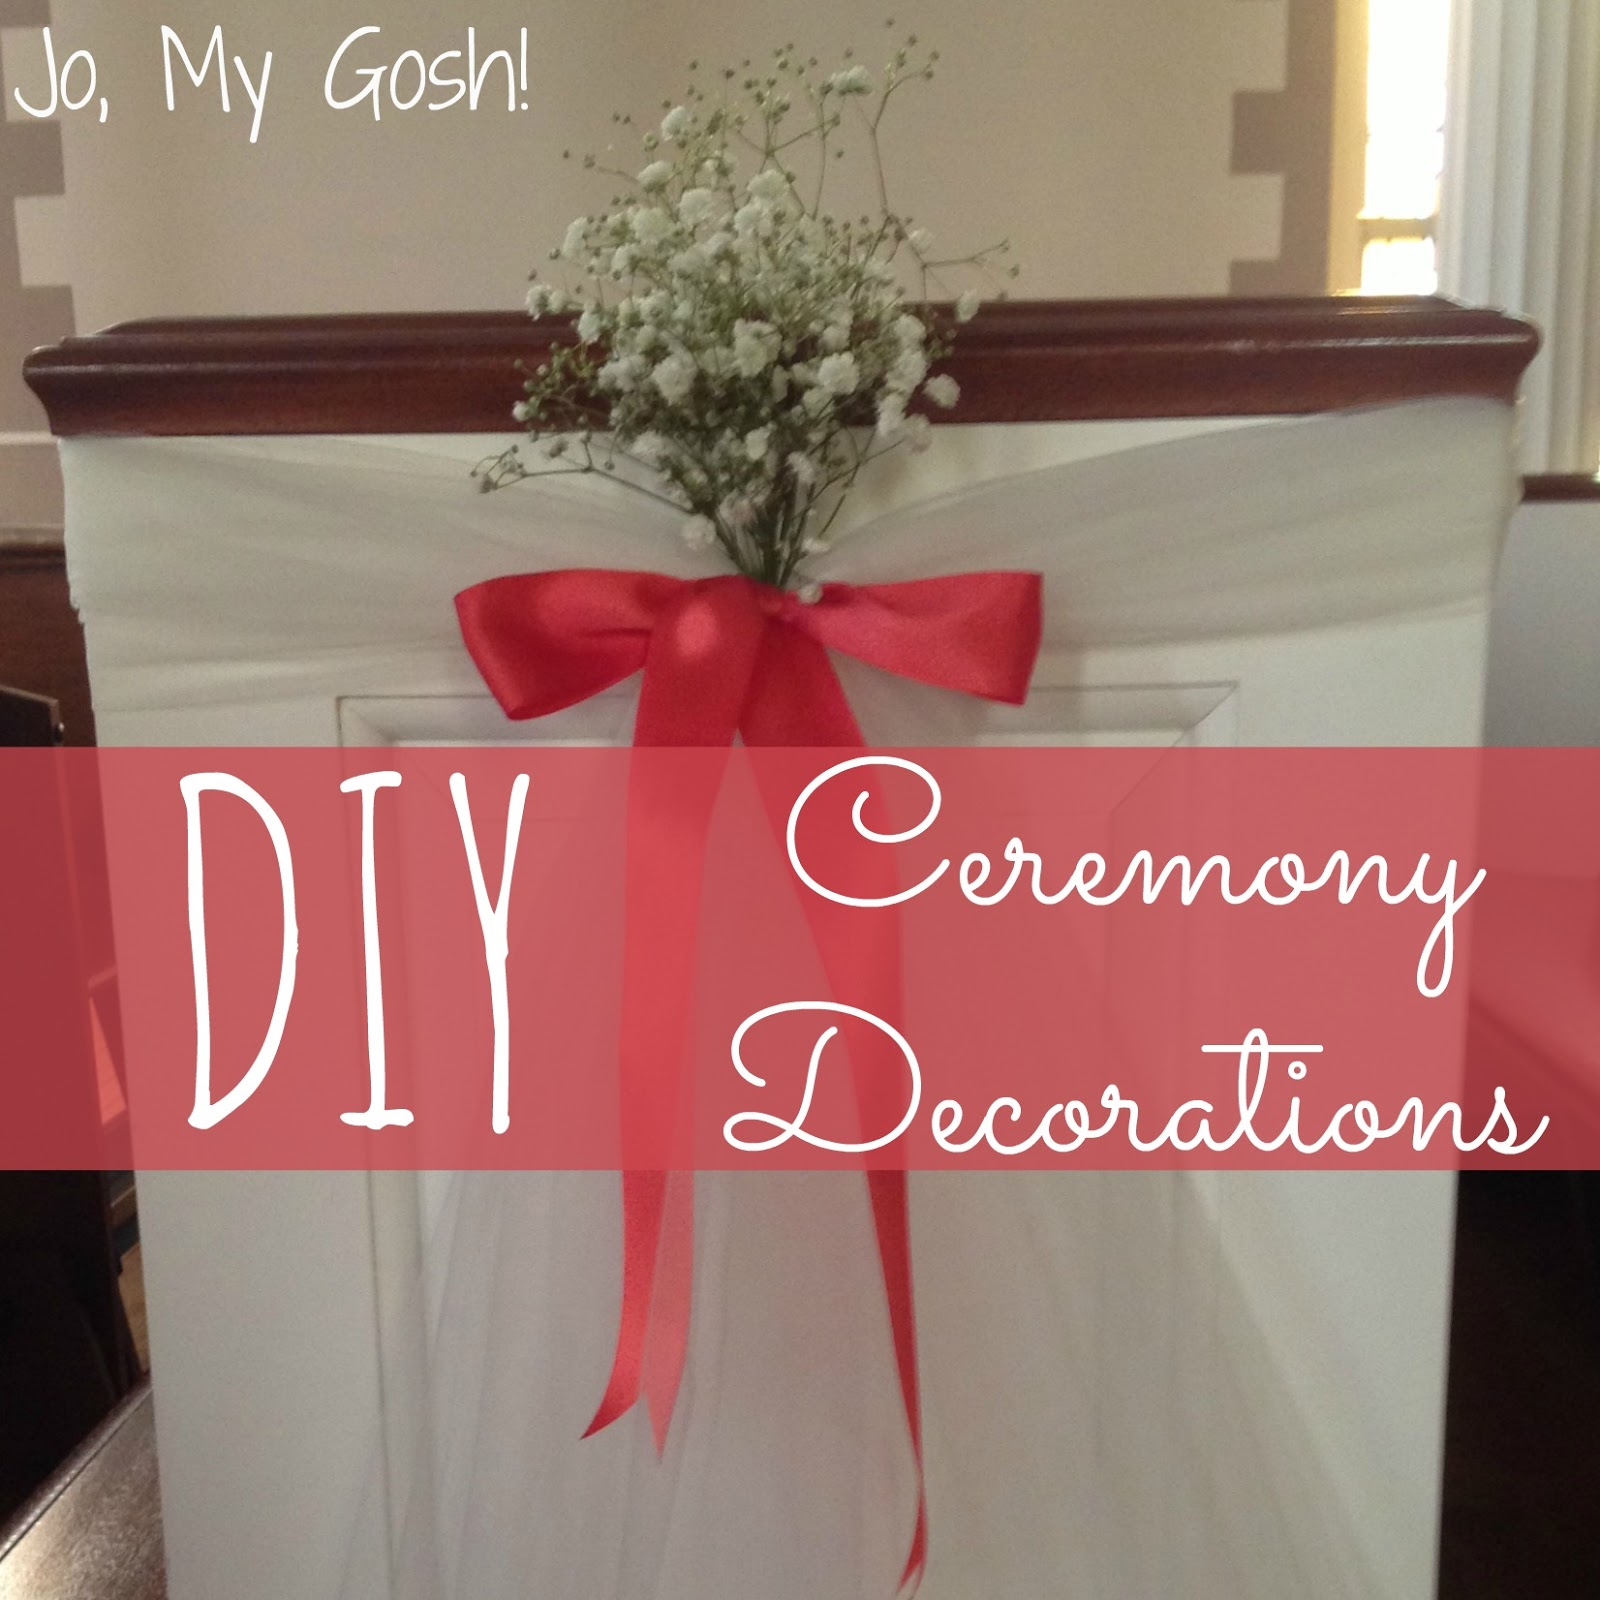 Jo, My Gosh!: DIY Wedding Ceremony Decorations